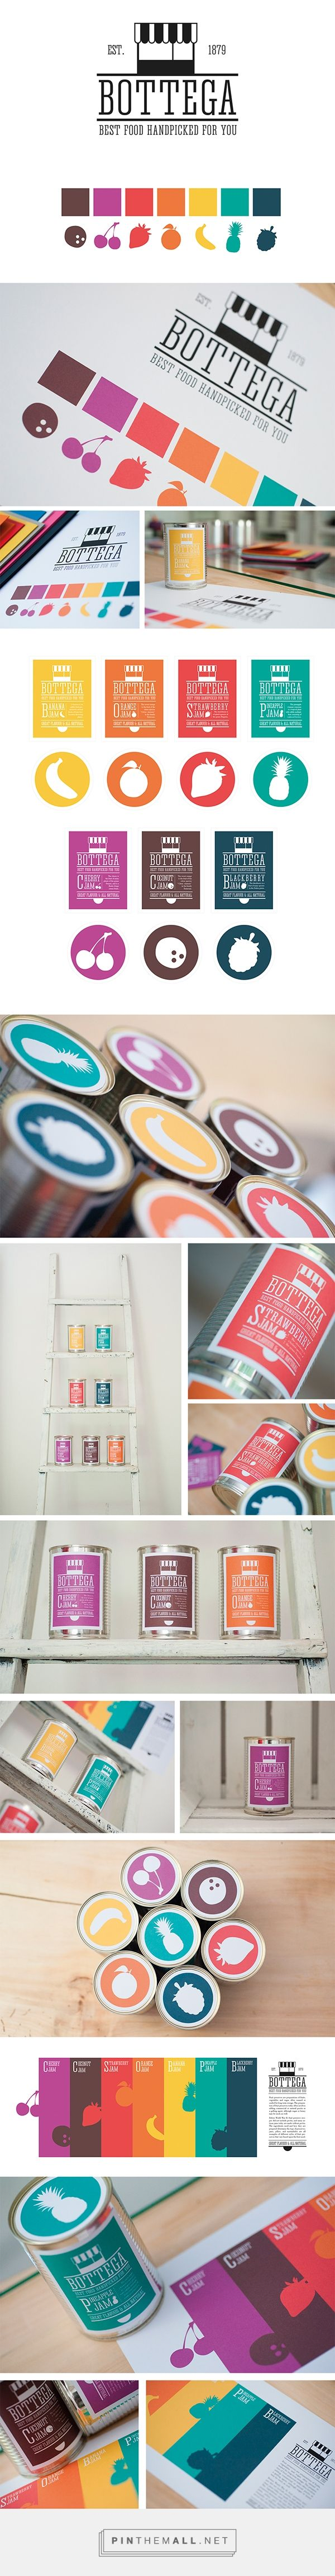 Bottega packaging branding on Behance by Discromie curated by Packaging Diva PD. What can you do with a can, icons and some color?